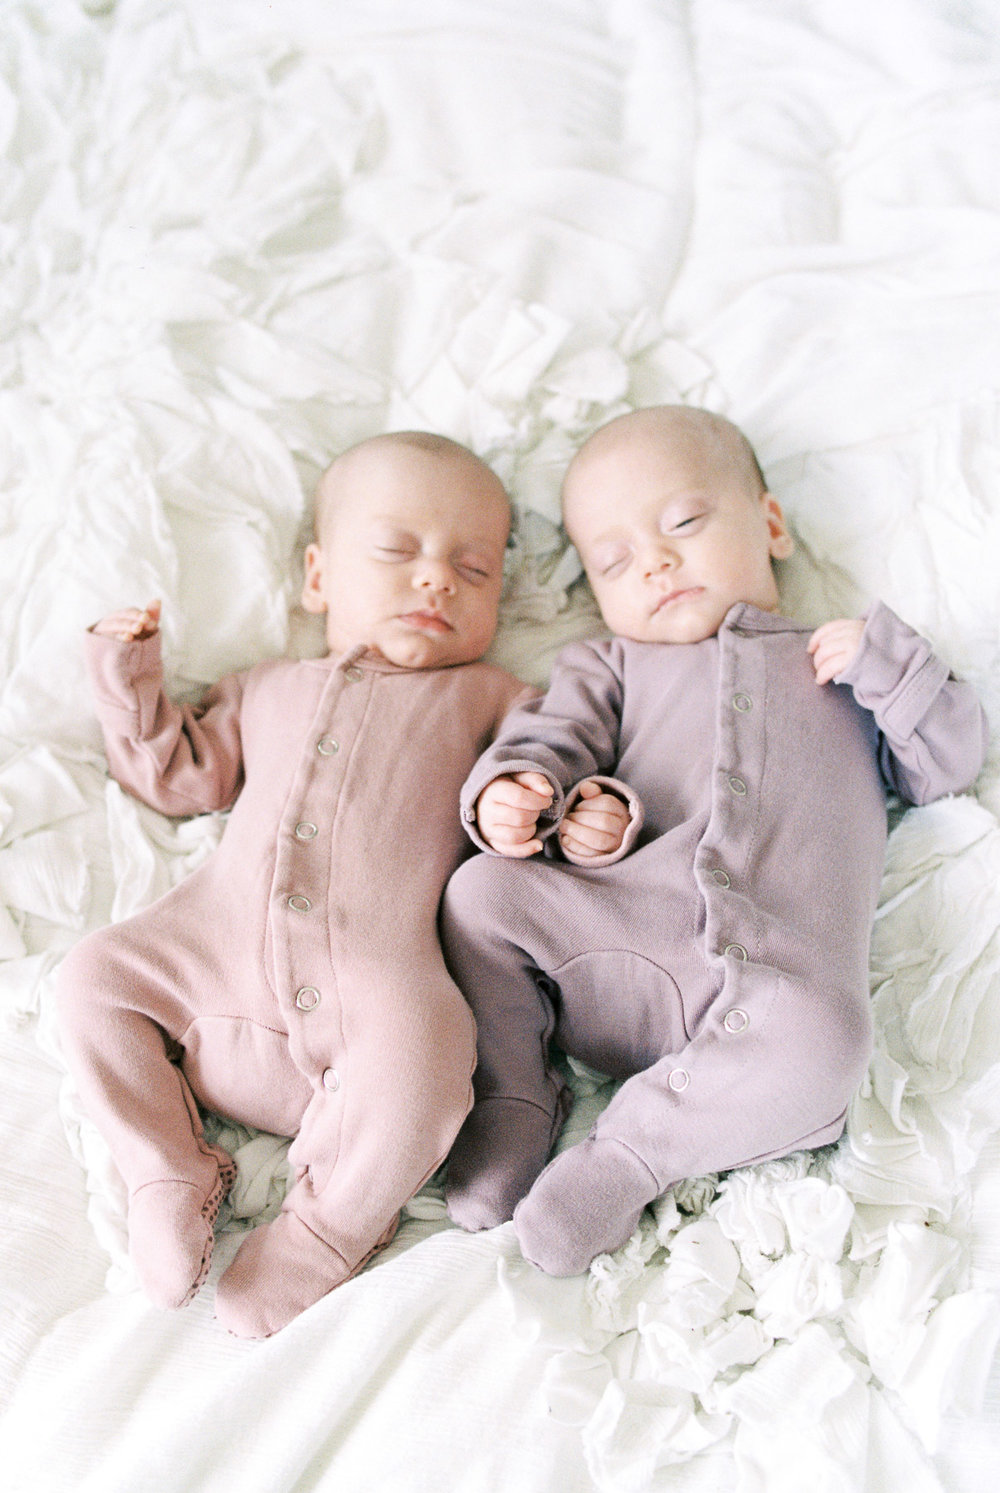 Twin Newborns wearing L'oved Baby Gloved Overalls